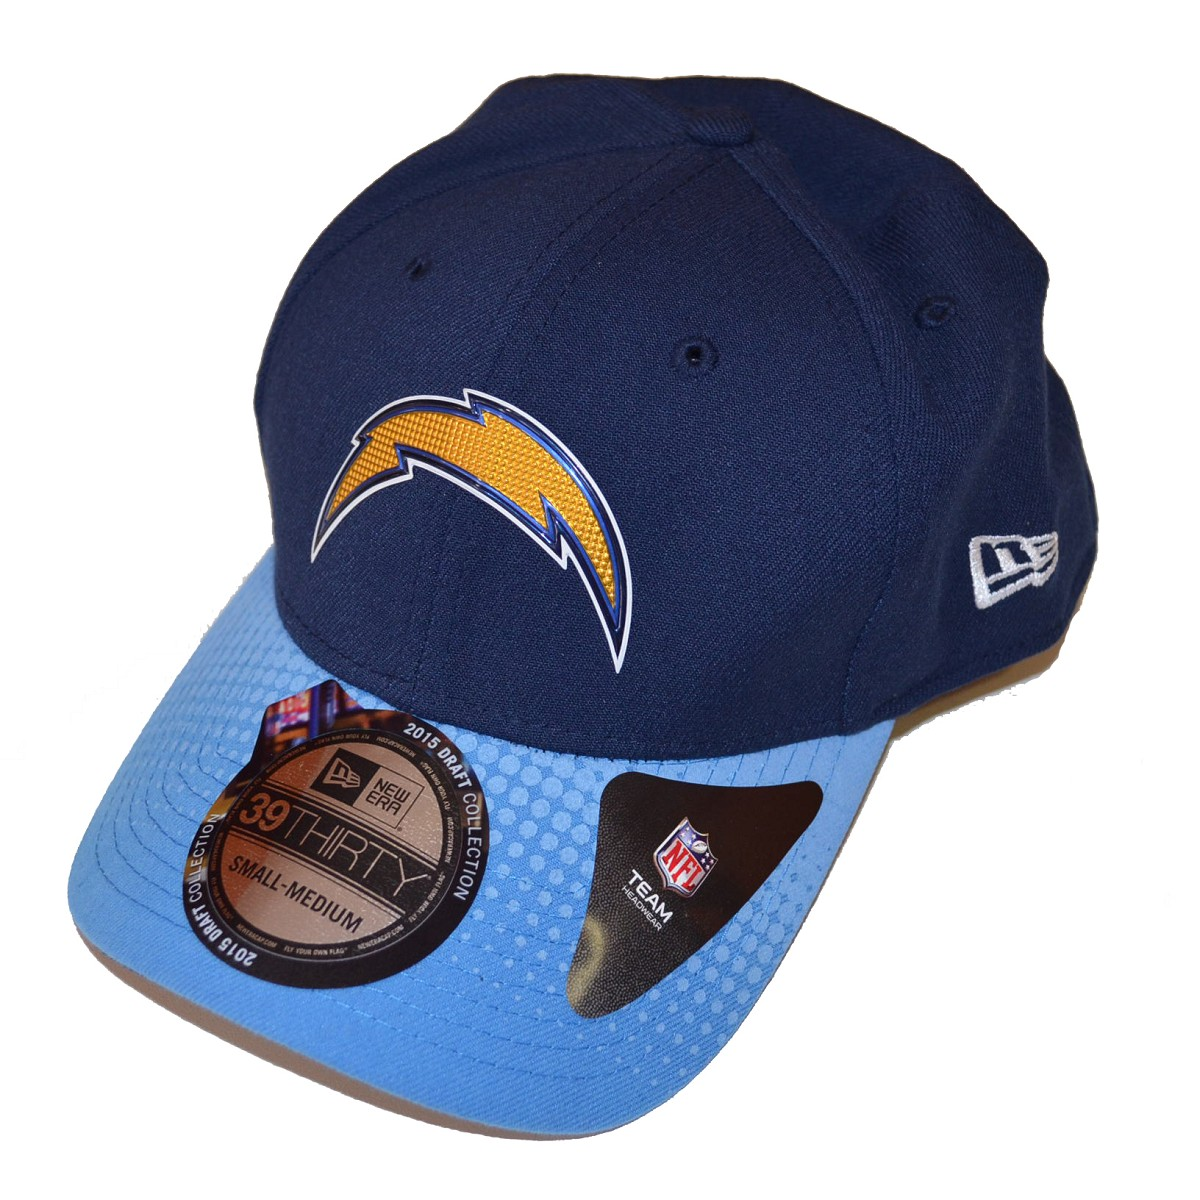 San Diego Chargers Fleece Fabric: CAPPELLO NEW ERA 39THIRTY DRAFT 15 SAN DIEGO CHARGERS